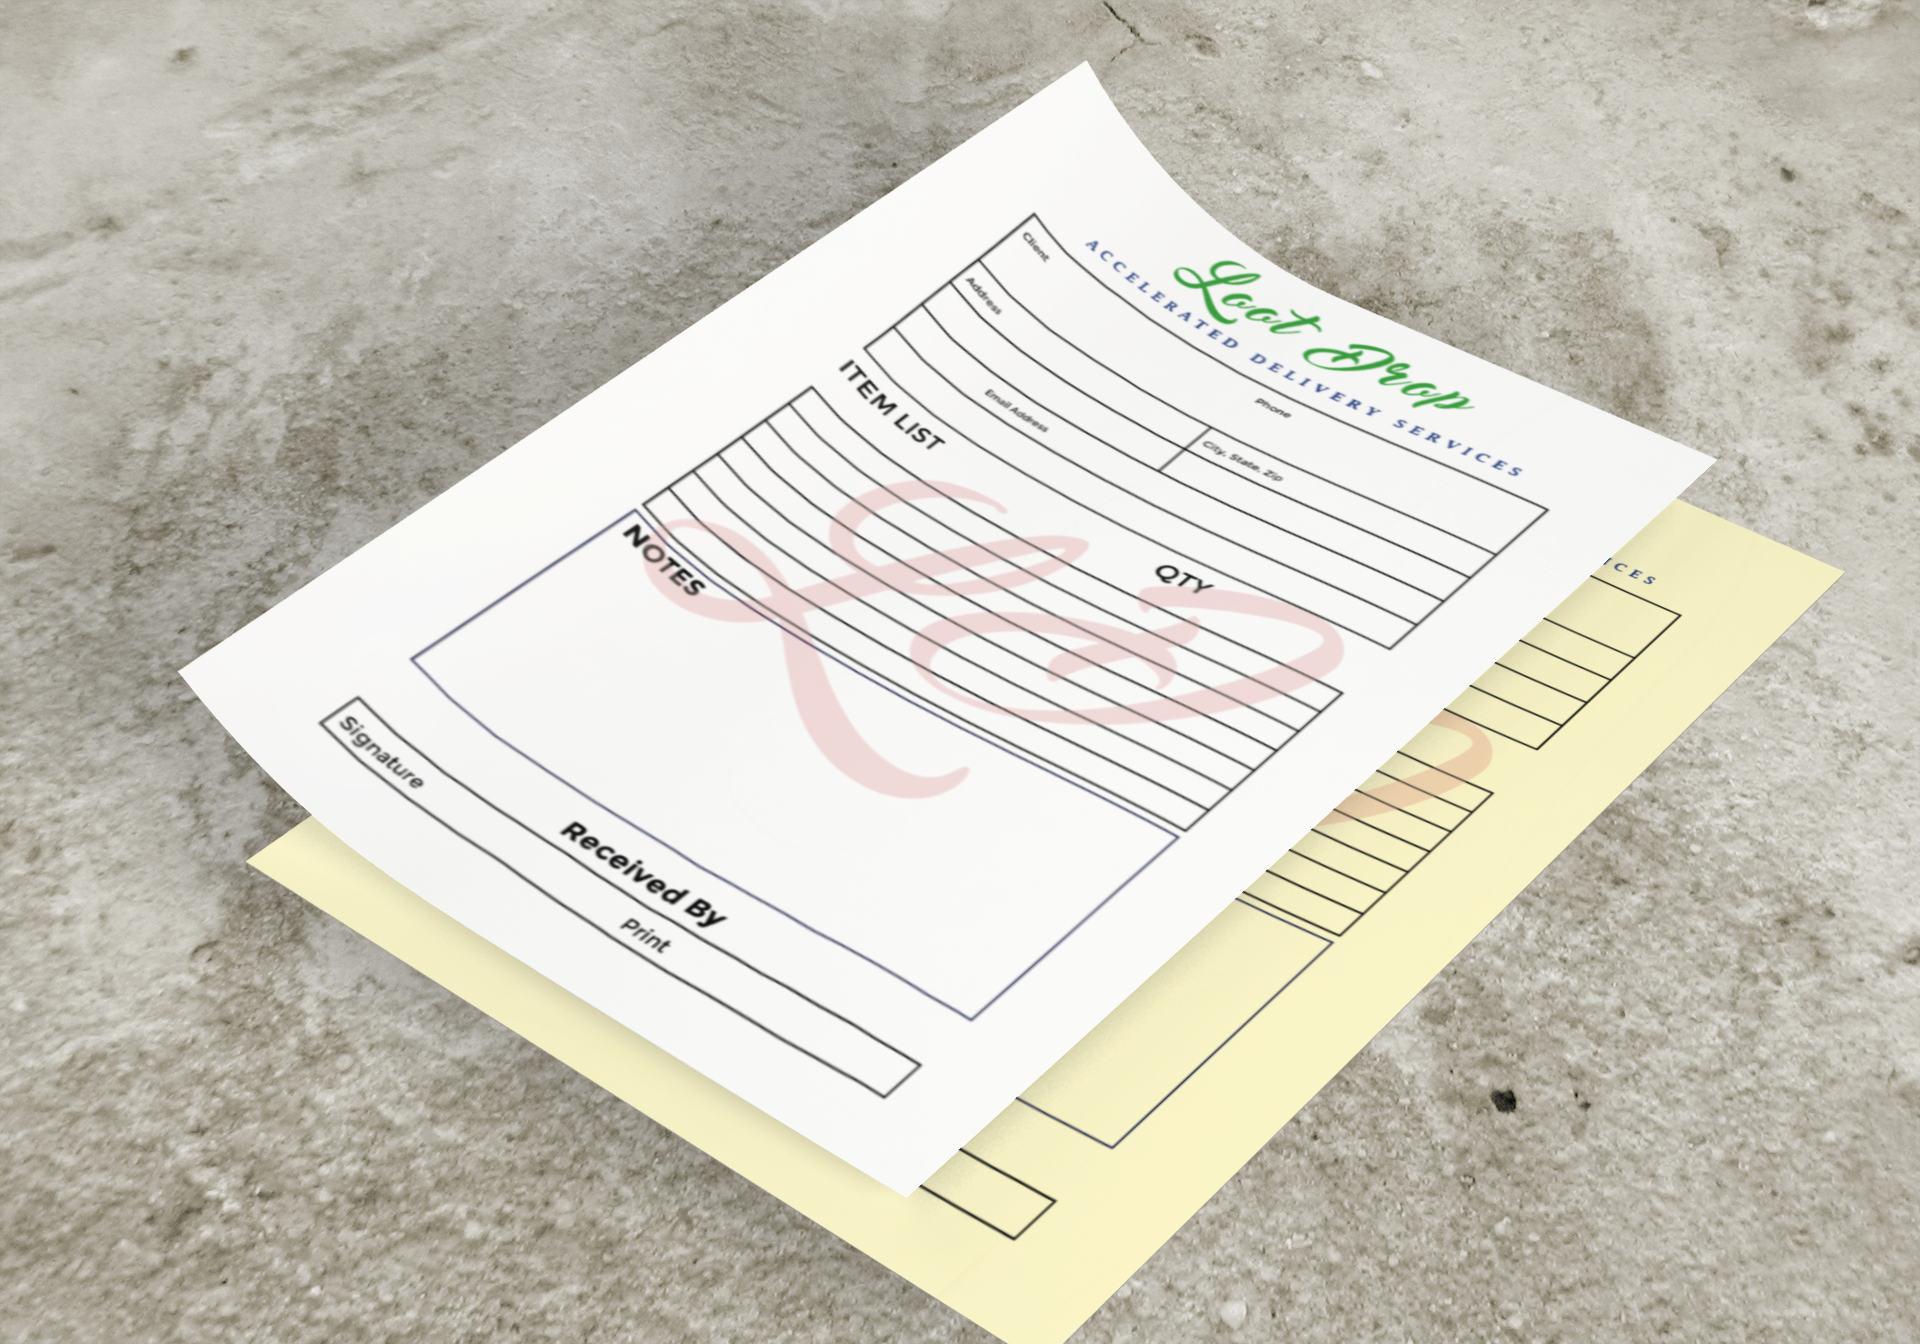 business form printing multipart business form printing fast business form printing 2 part business forms ncr printing_1